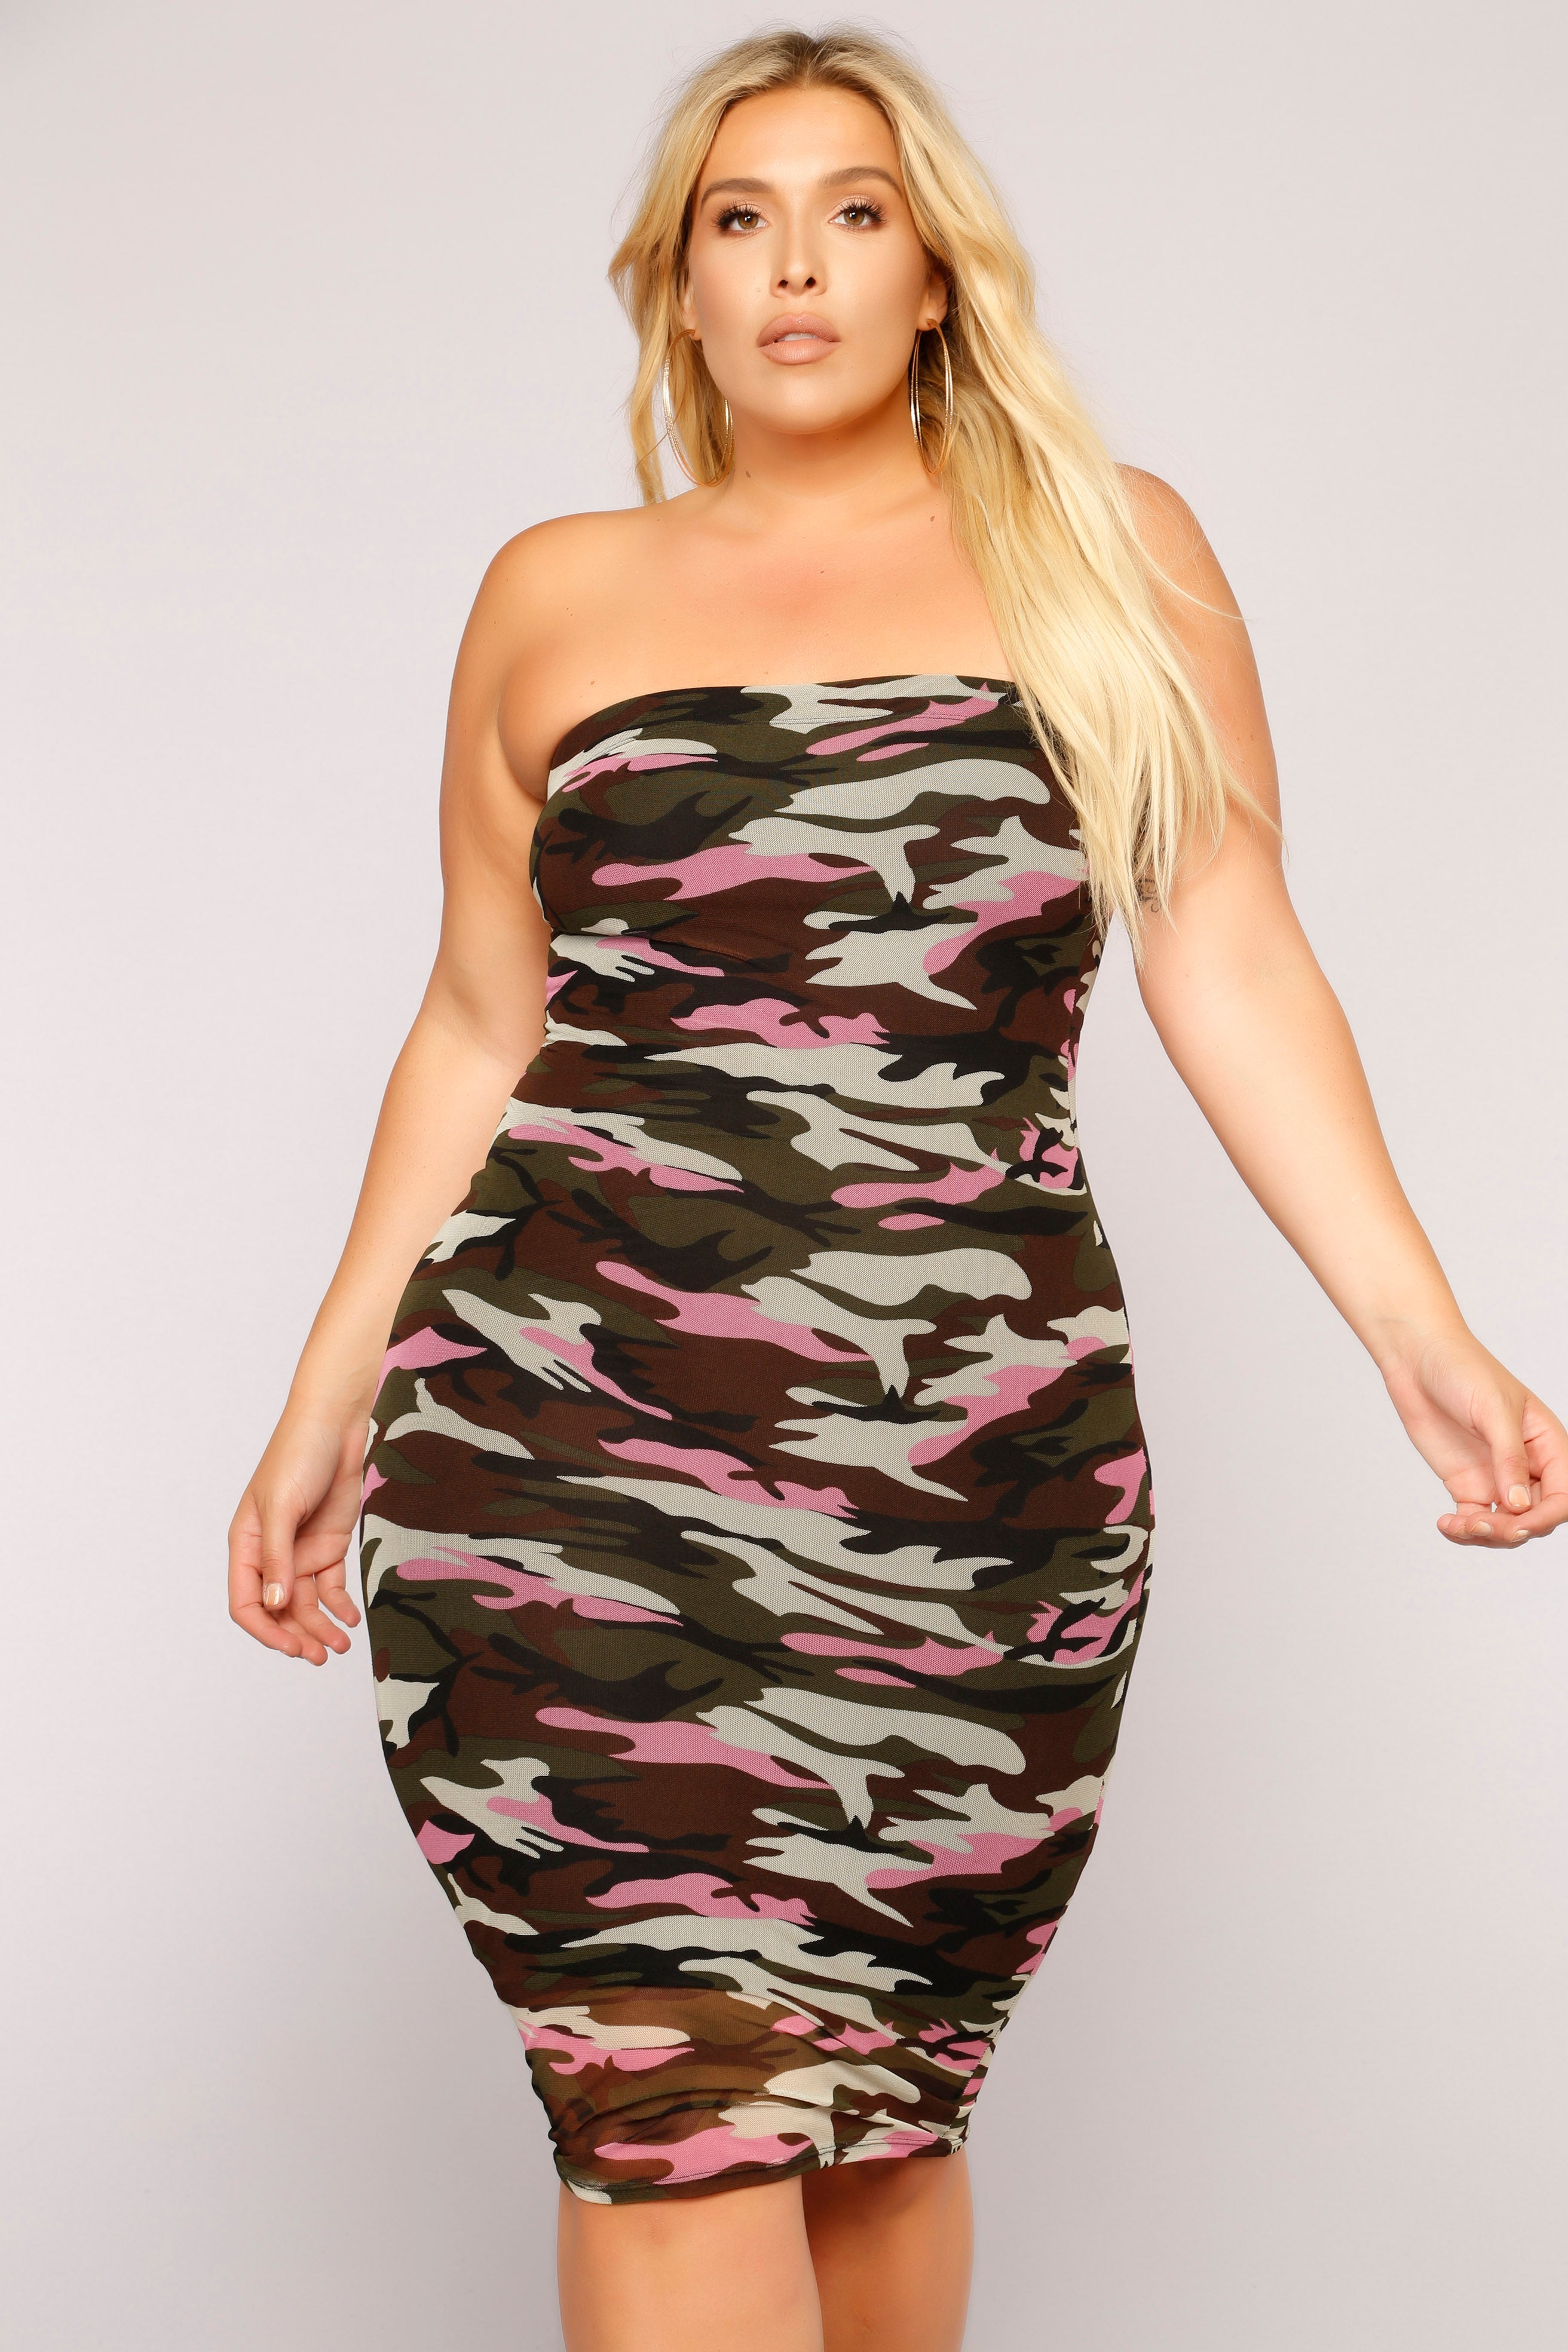 c7eb1903fe4 Fightin  Chance Tube Dress - Pink Camo · plus-size